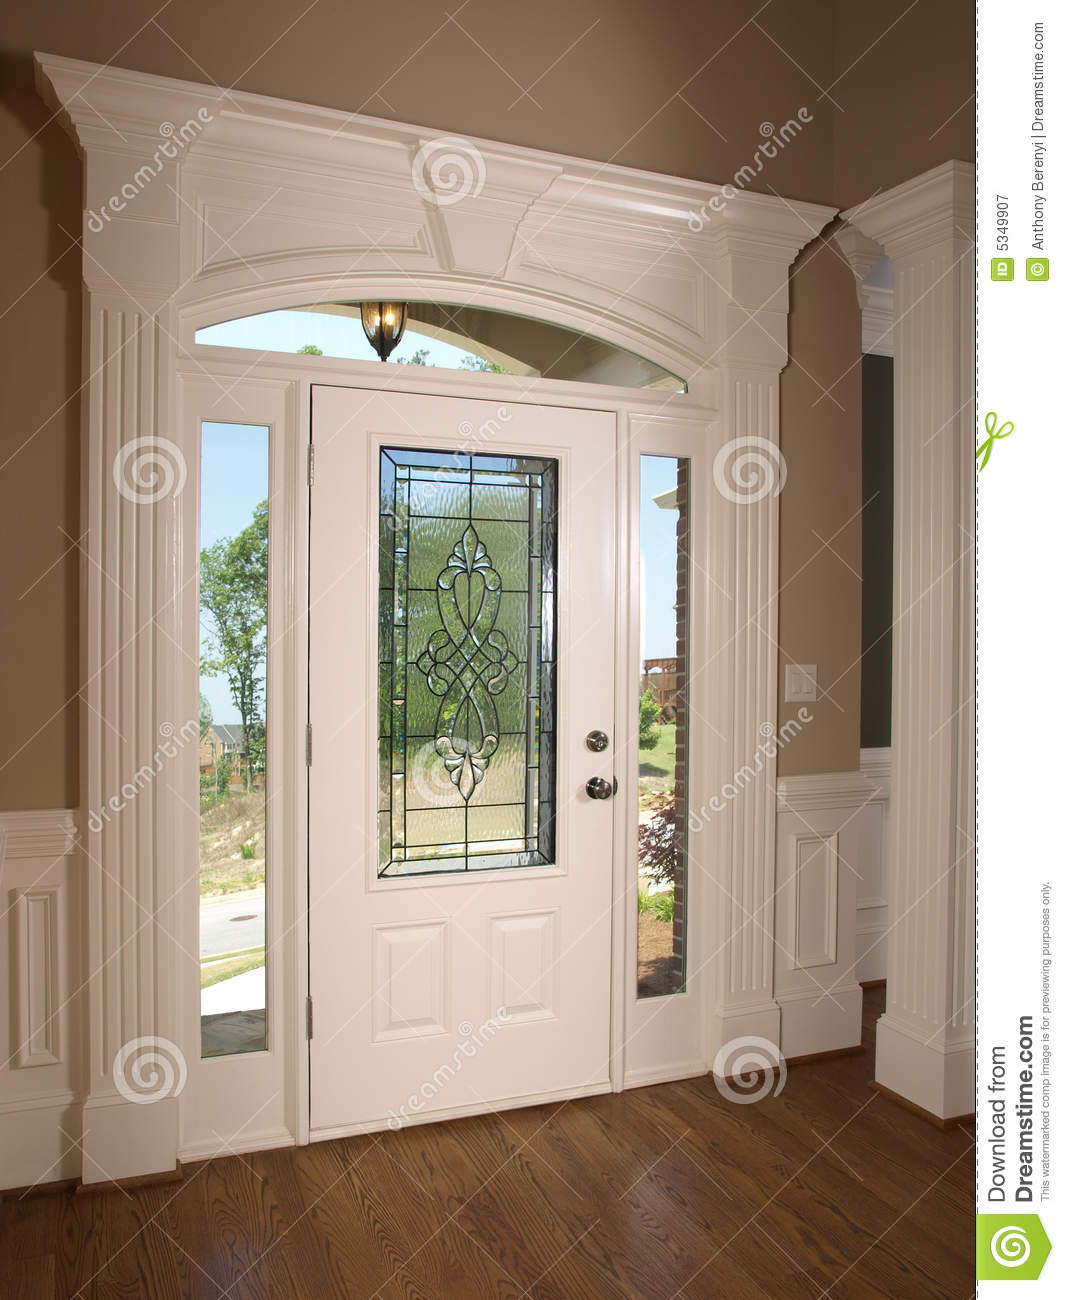 Luxury model home front door stock image image of foyer for Door models for house